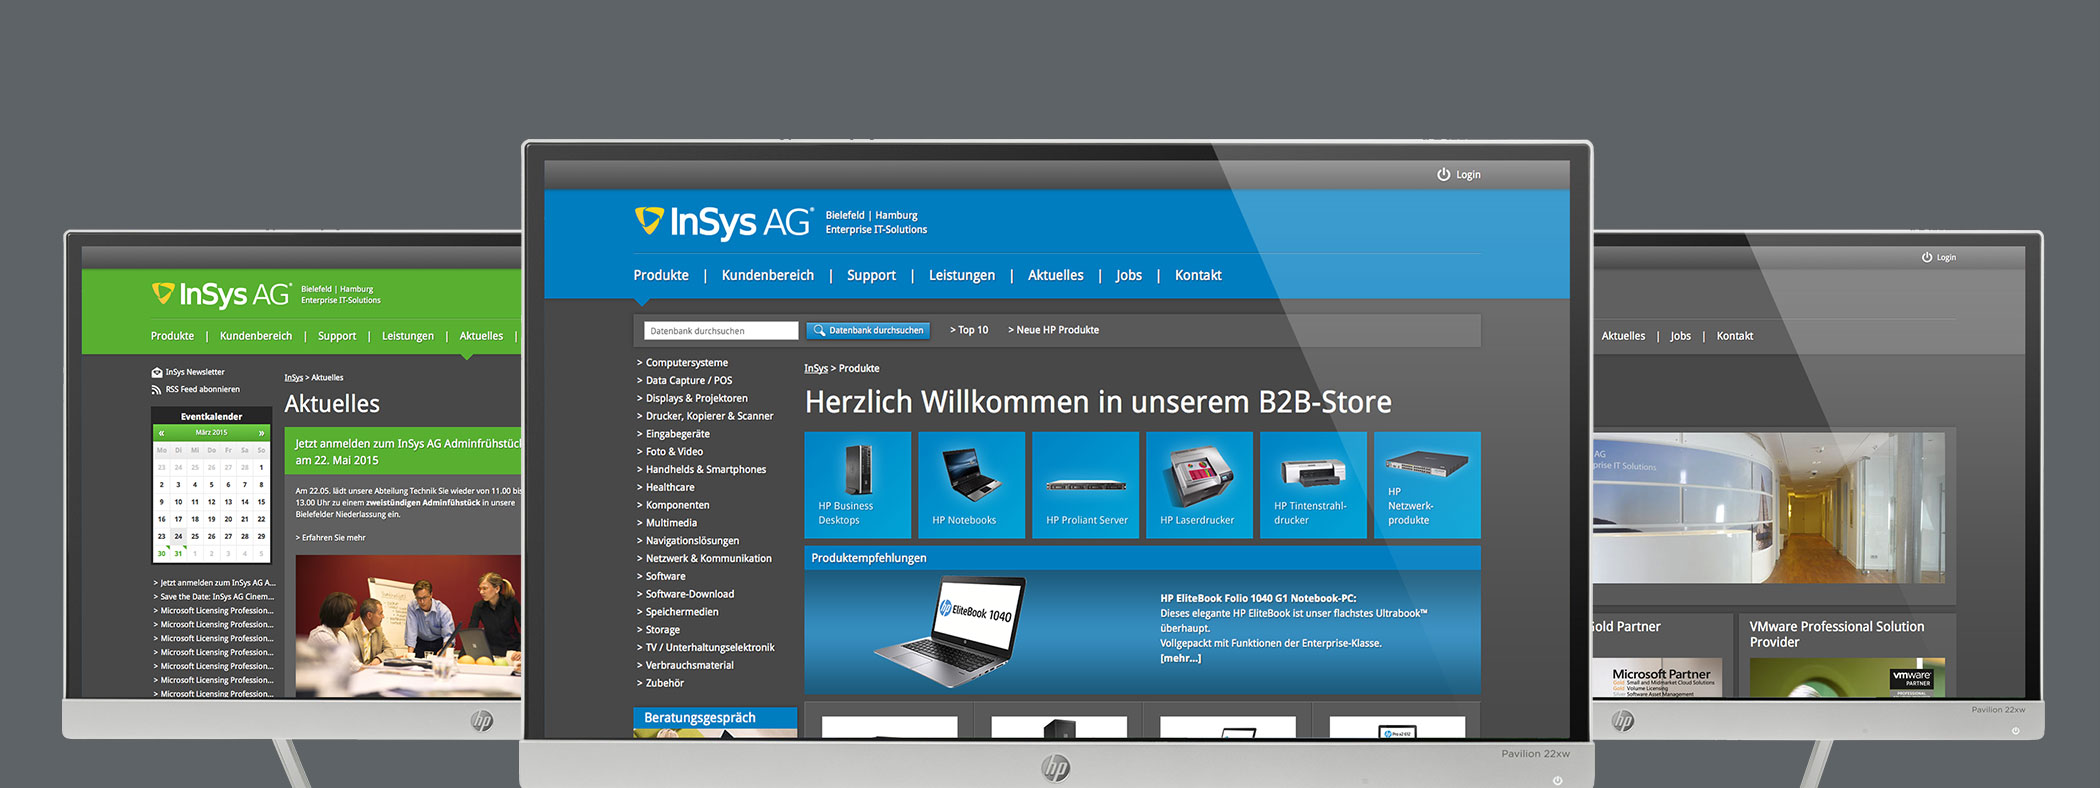 Online-Shop, Unternehmenswebsite & Support-Center in einem: Die InSys Website